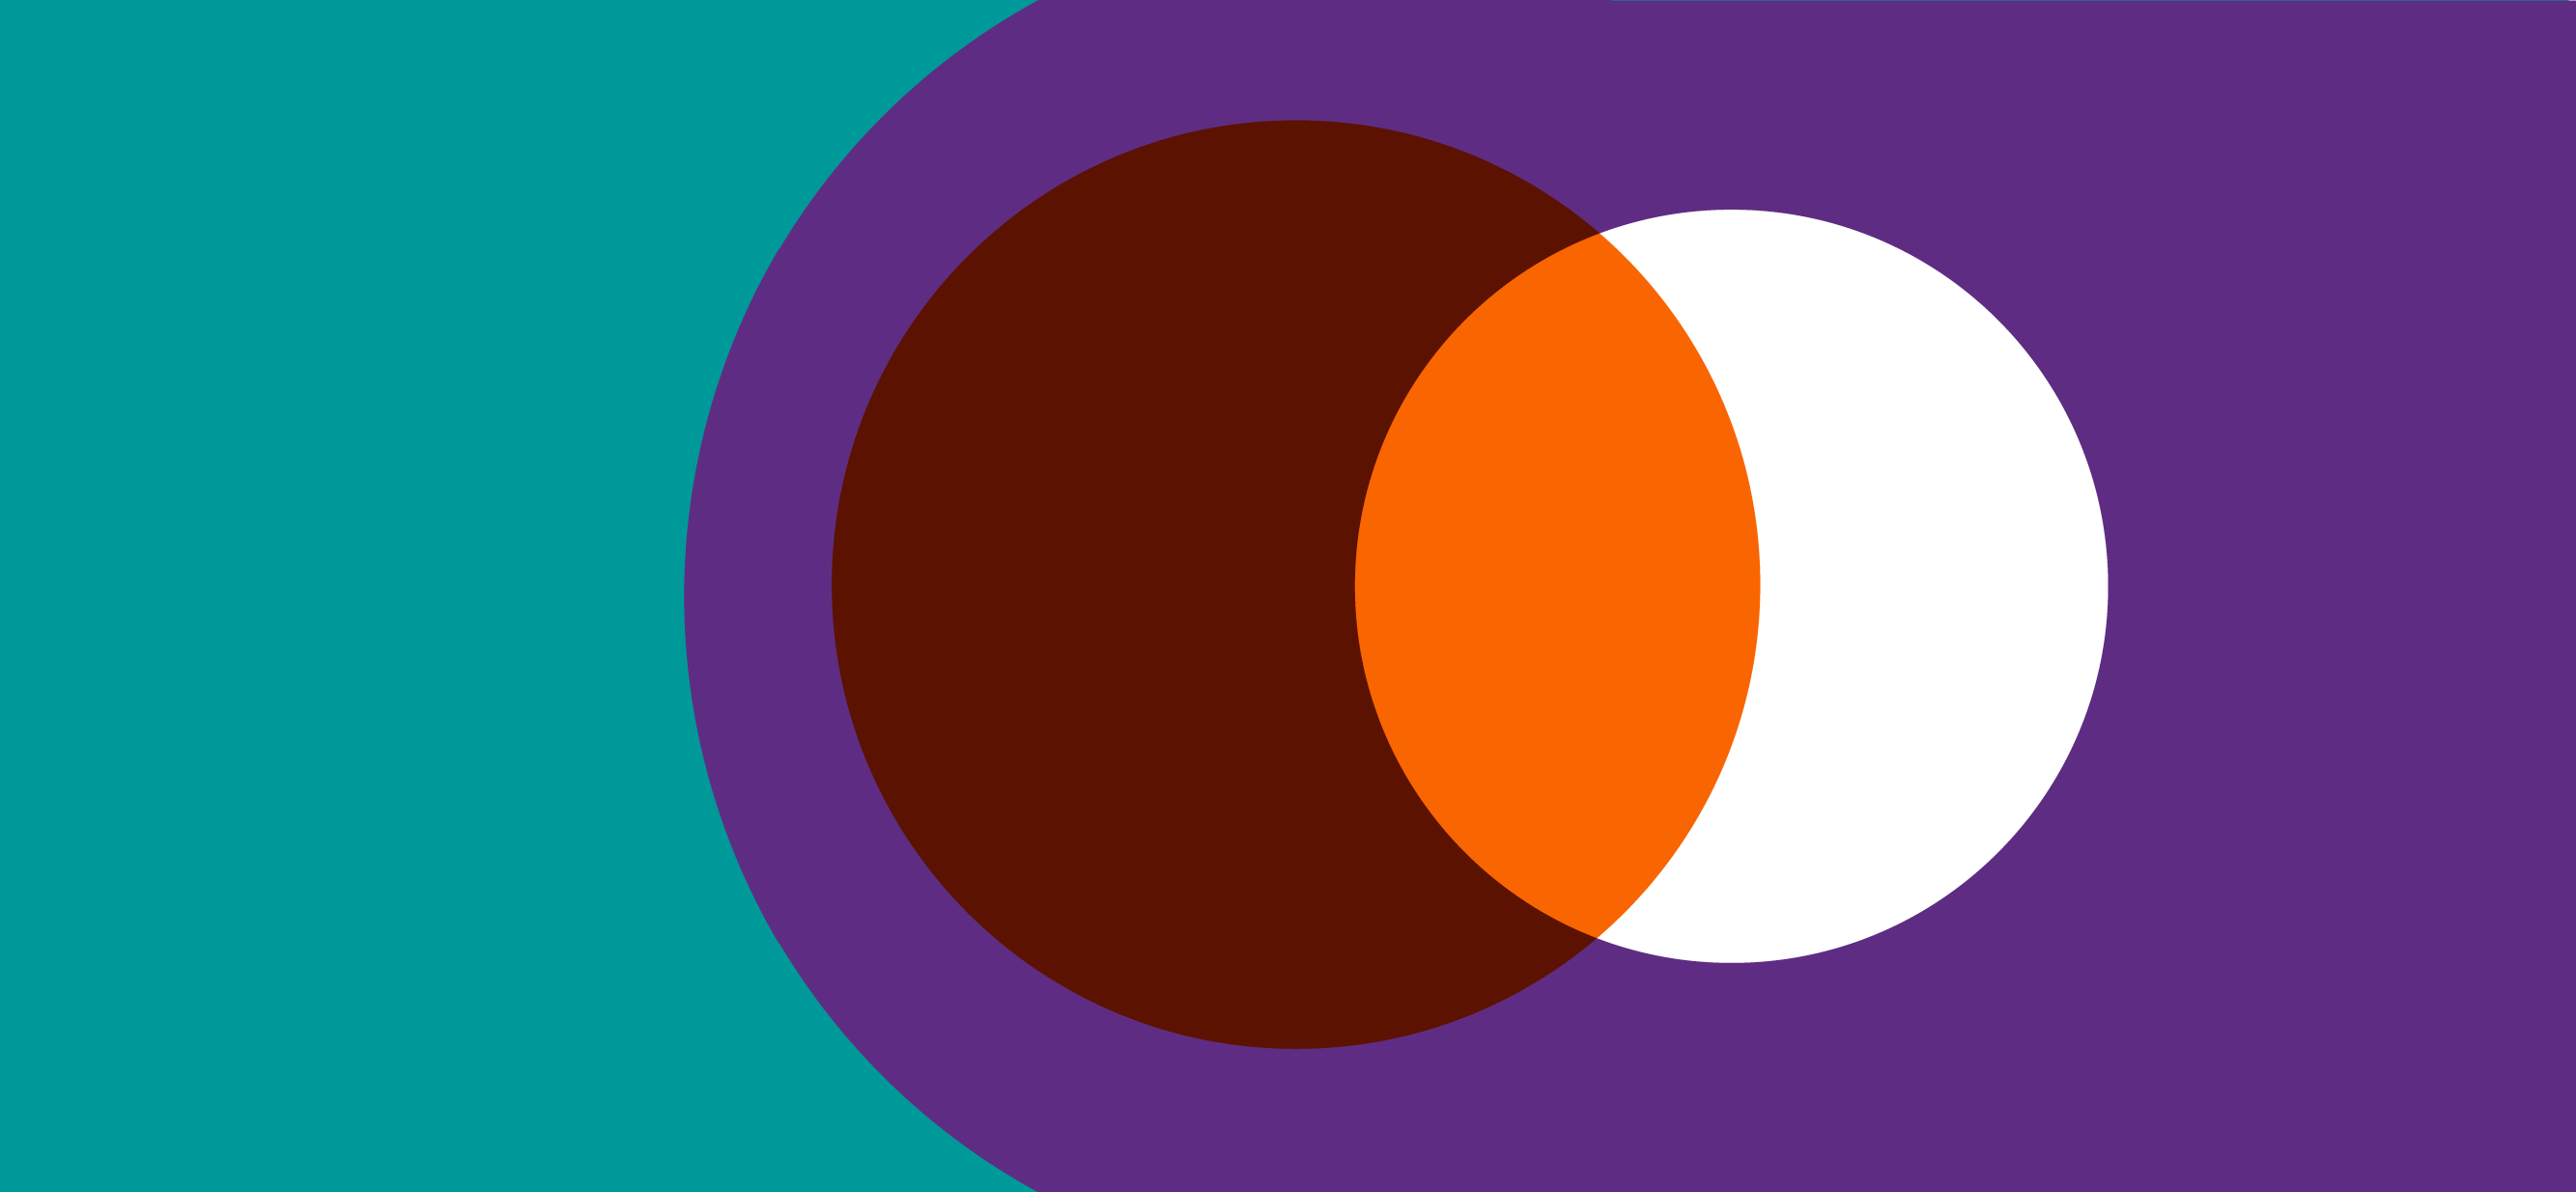 Decorative graphic with an orange circle and a white circle overlapping against a teal and purple background